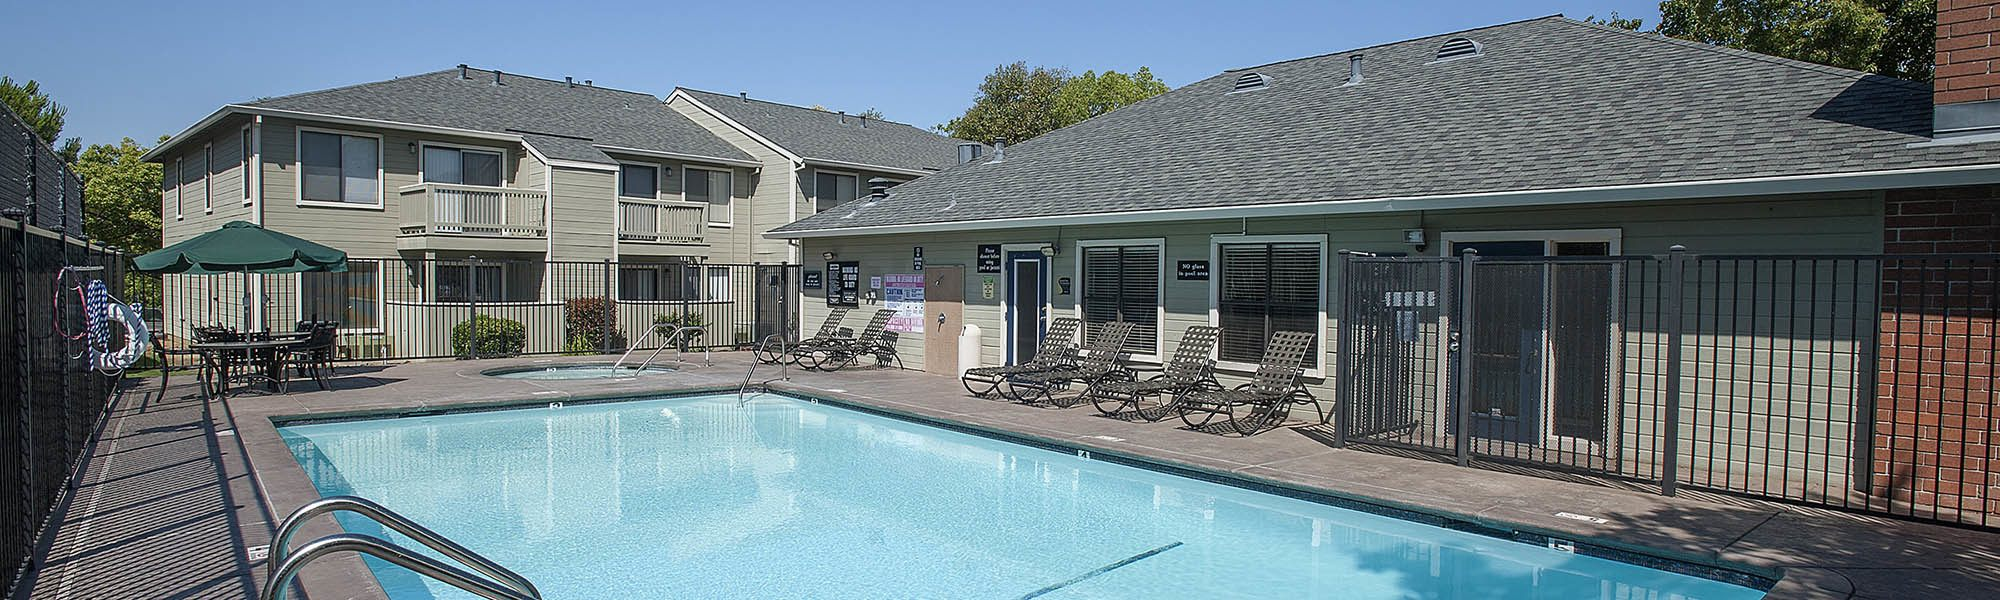 Read reviews of Sandpiper Village Apartment Homes on our website